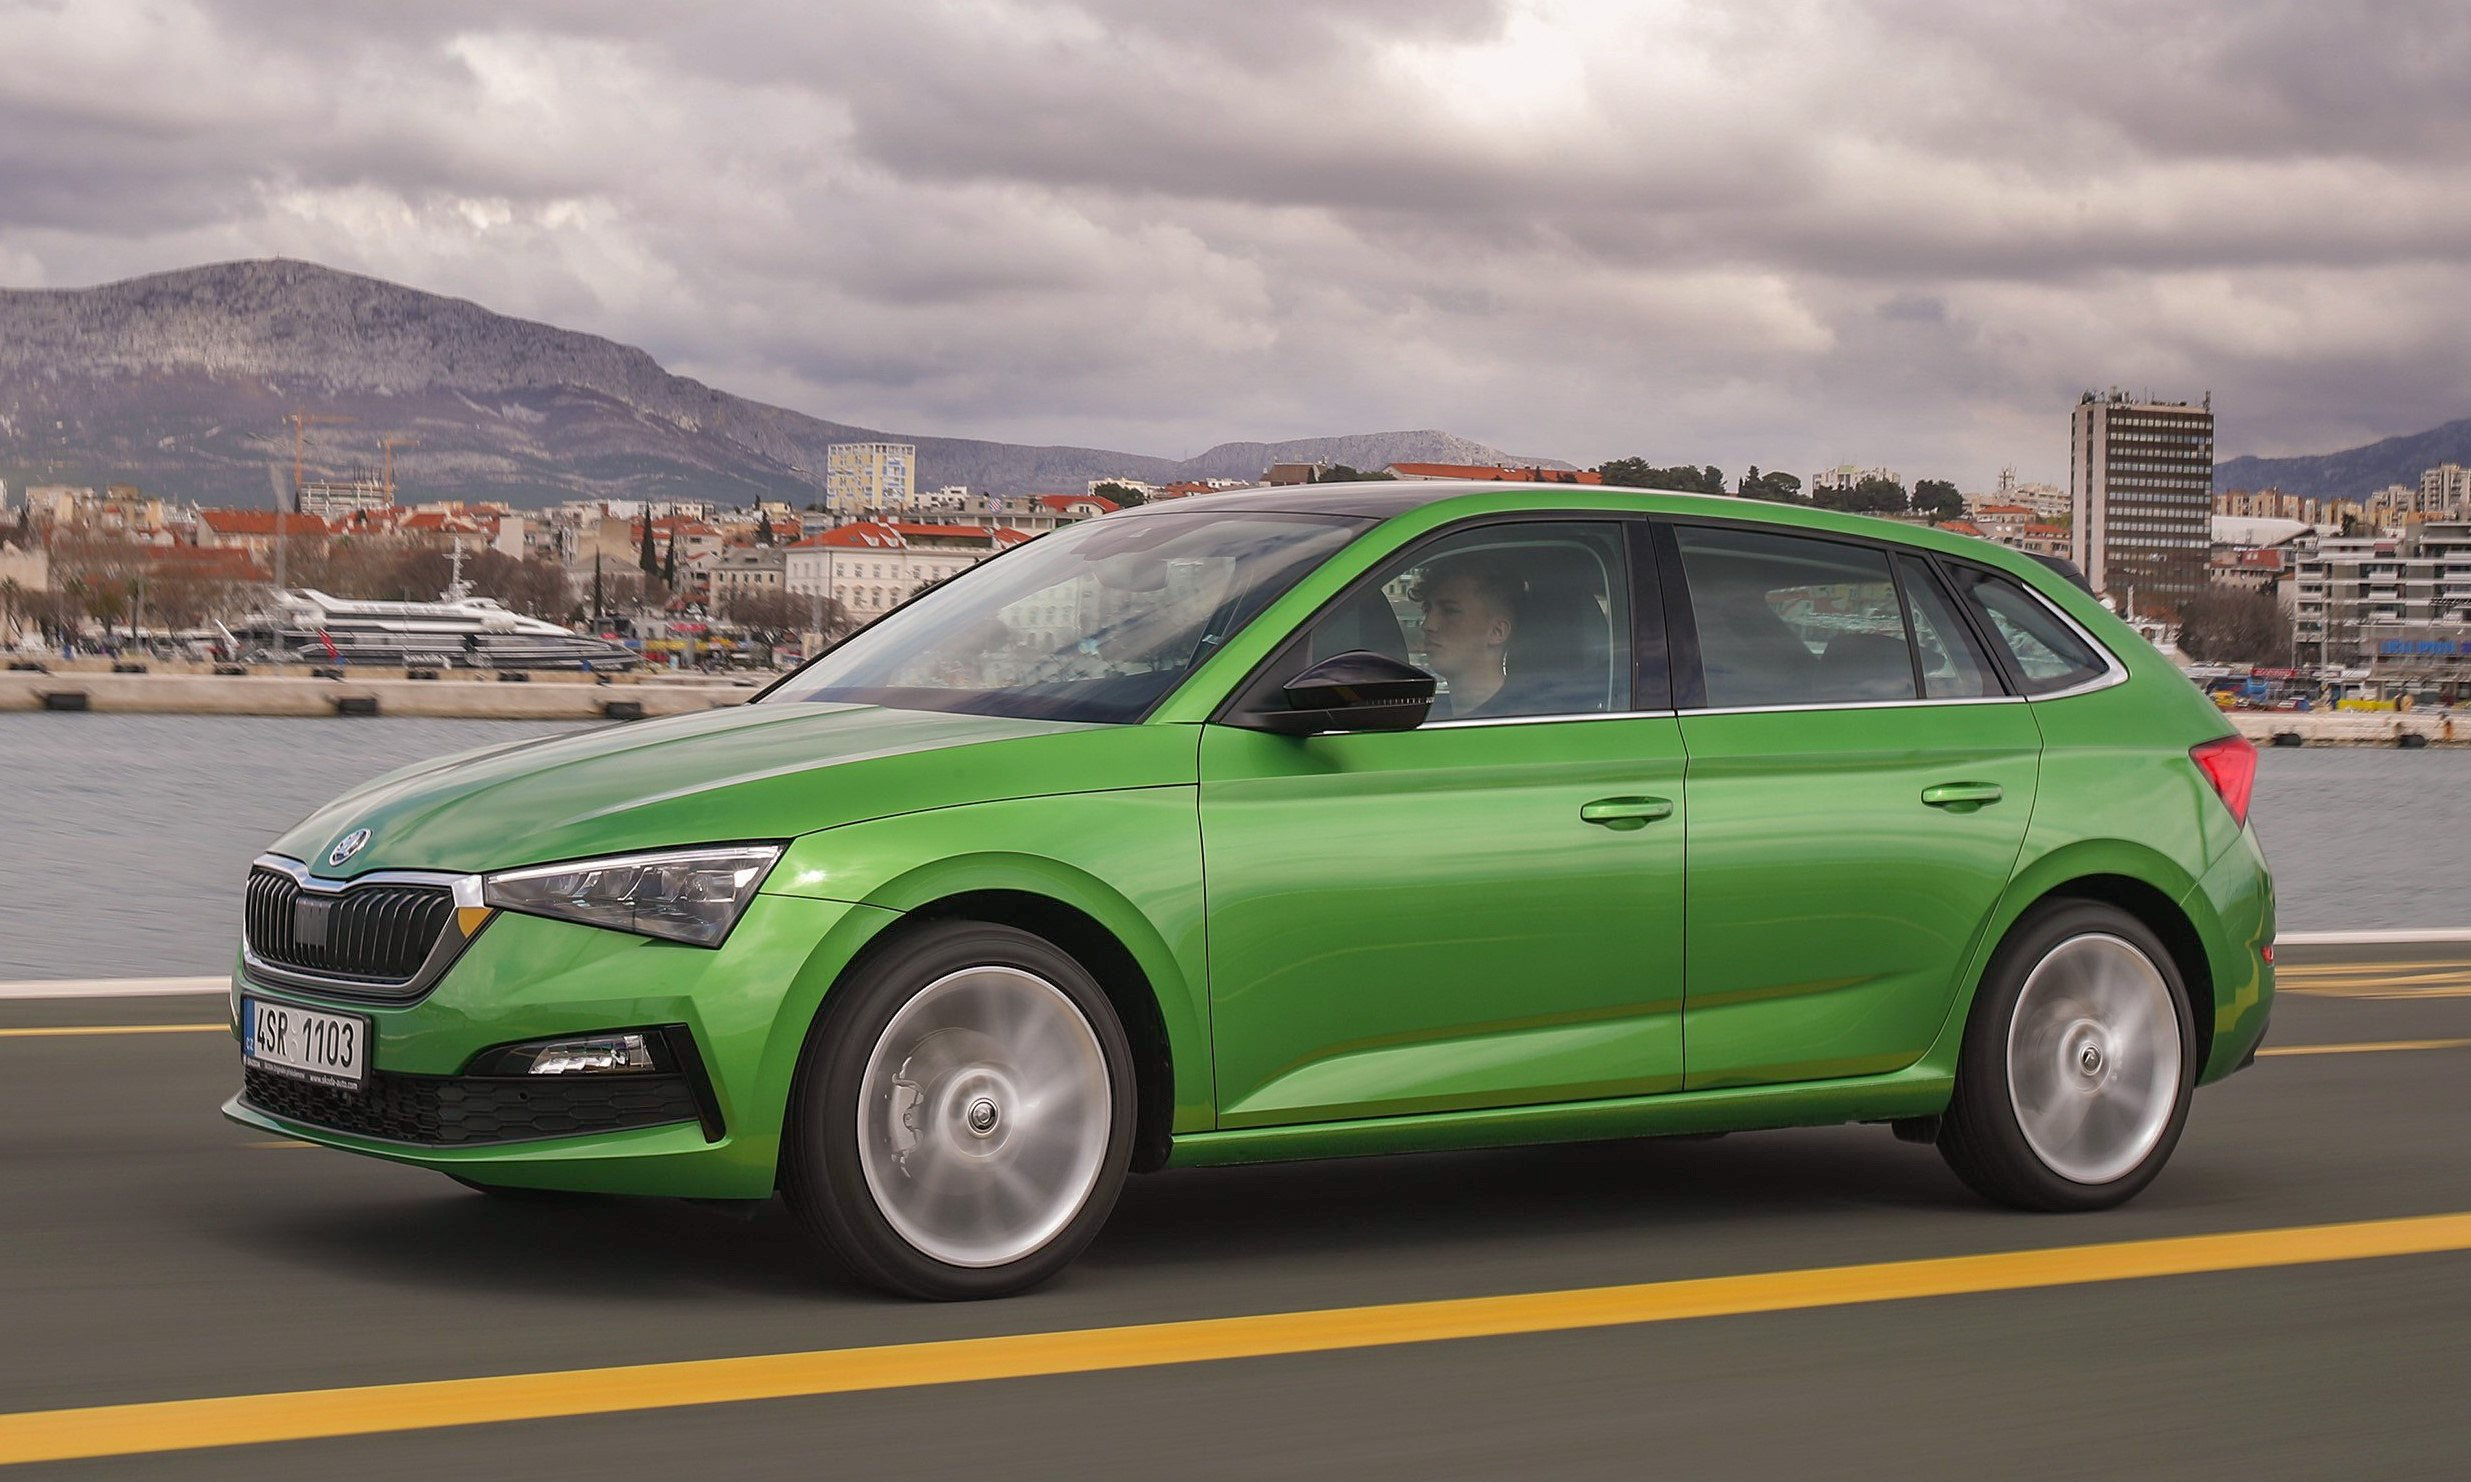 The Skoda Scala replaces the slow-selling Rapid Spaceback launched in 2014.